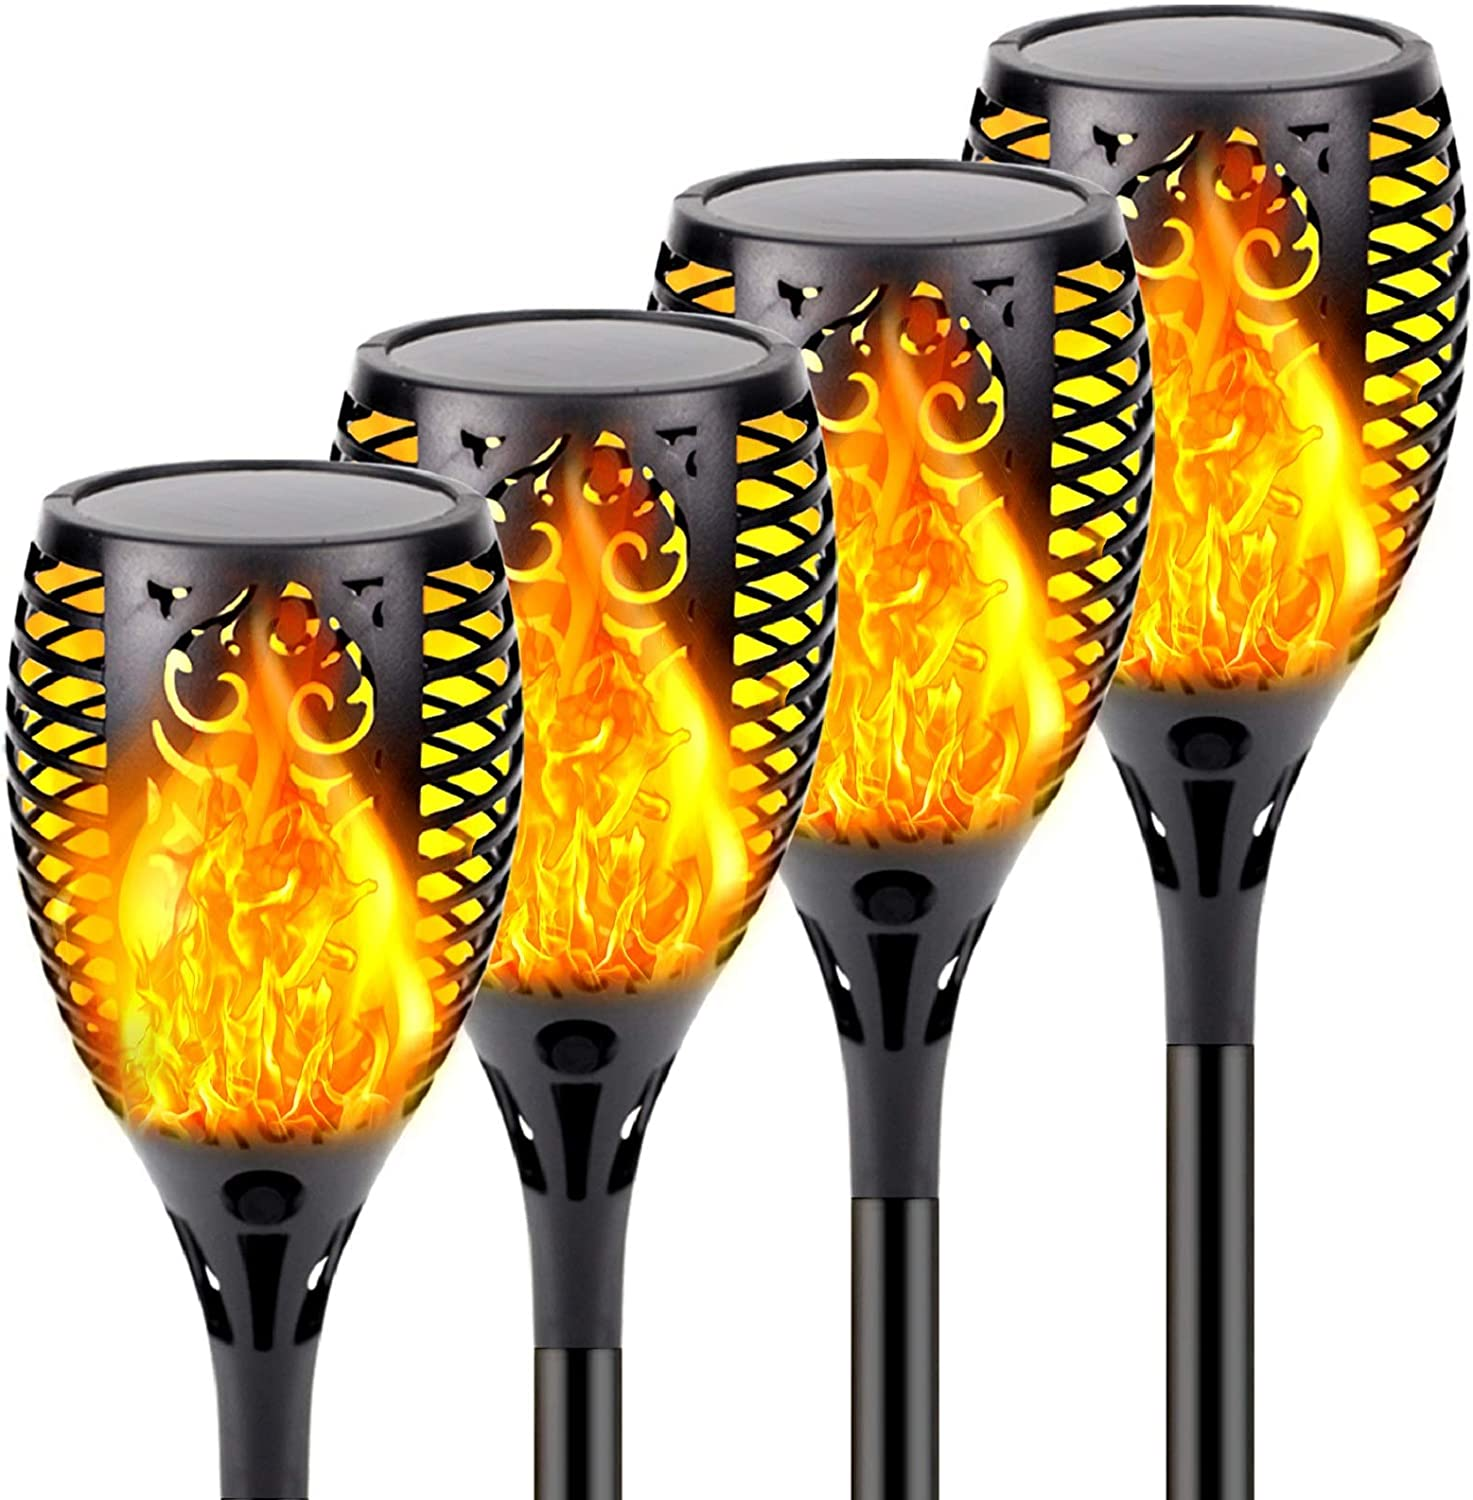 4-Pack Solar Lights Outdoor, Upgraded 33 LED Solar Torch Light with Flickering Flame for Christmas Decorations, Waterproof Landscape Decoration Lights for Pathway Garden - Dusk to Dawn Auto On/Off